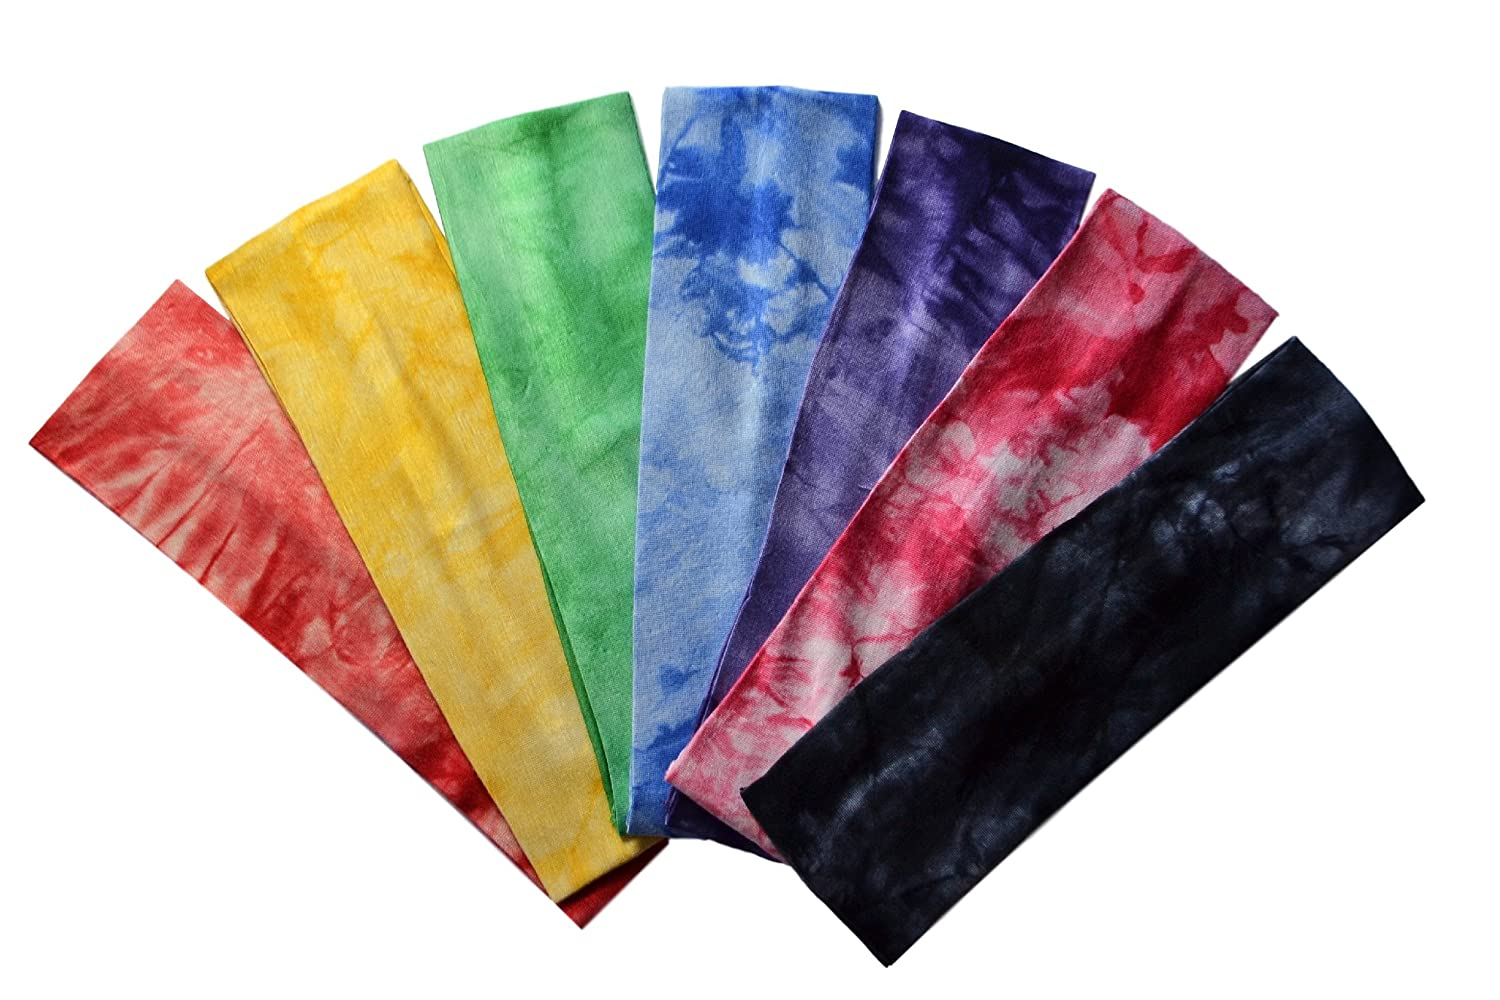 Set of 7 Marble Tie Dye Cotton Lycra Stretch Headbands by Funny Girl Designs